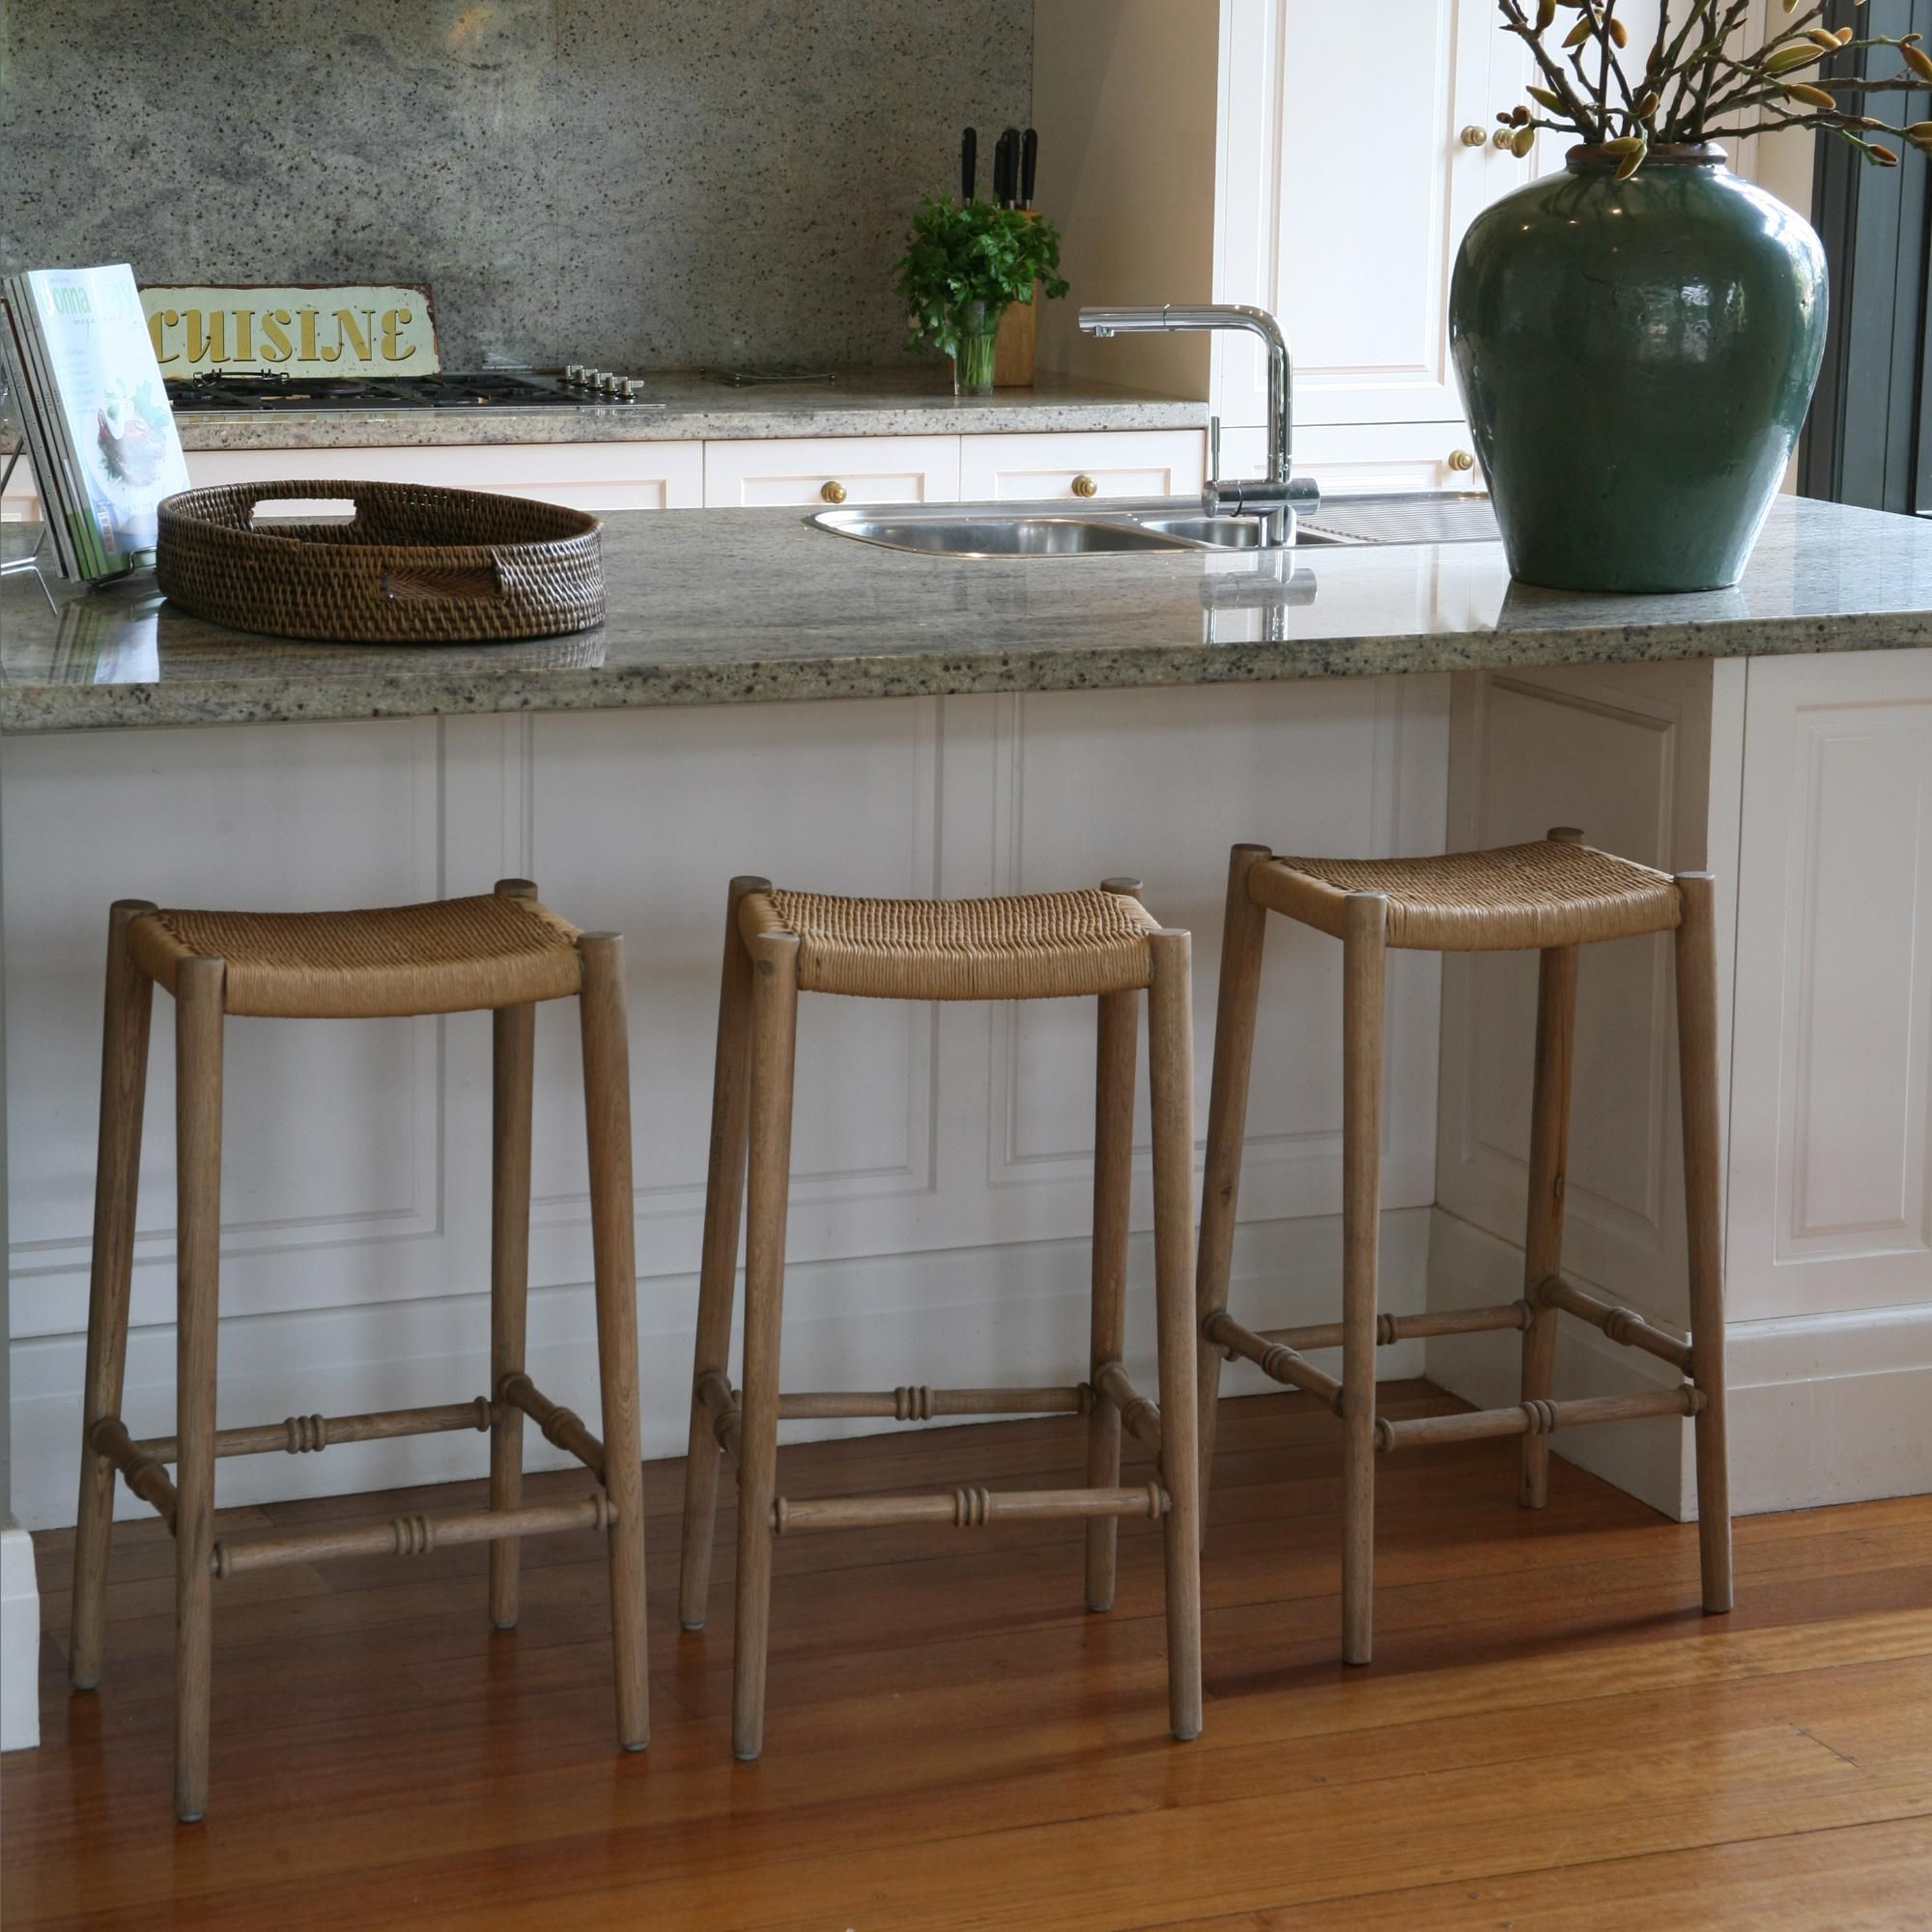 Unusual Kitchen Chairs: Furniture : Unique Kitchen Bar Stools From Bed Bath